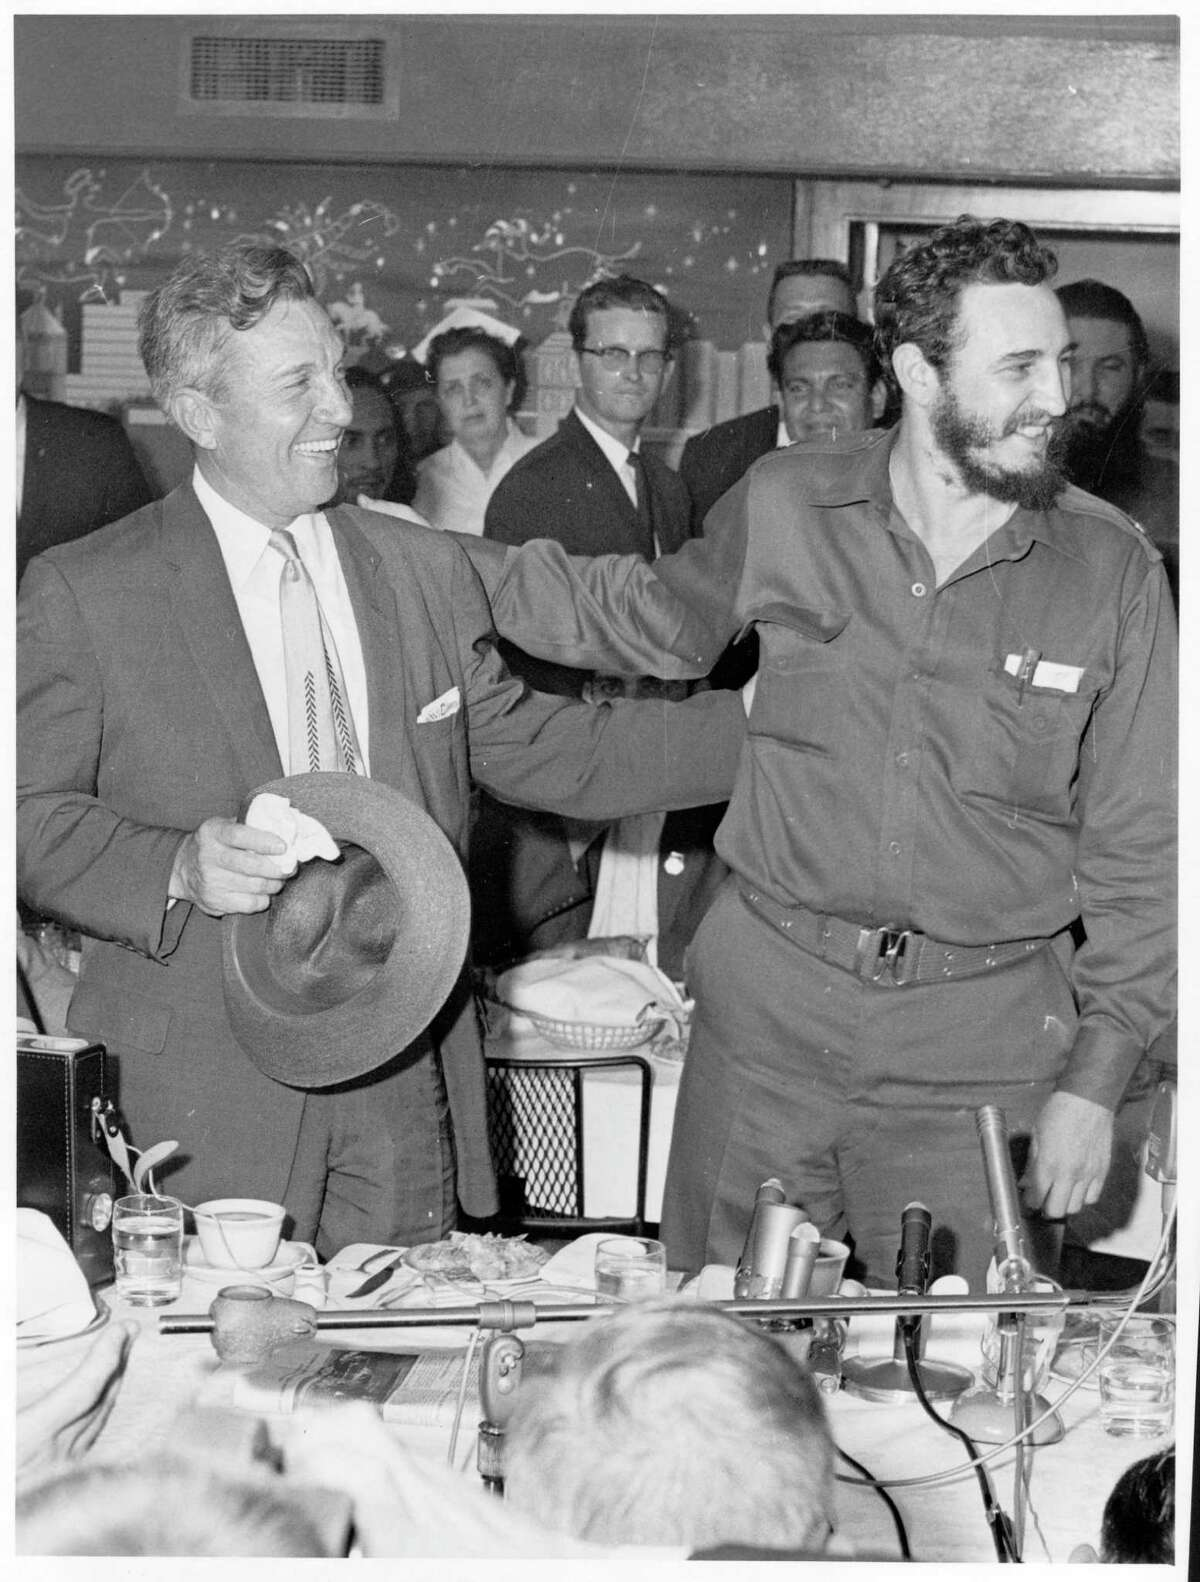 The 32-year-old Fidel Castro came to Houston on April 26, 1959 as a man who many thought would bring democracy to a small country just a few hours plane ride from Texas. The Cuban leader was on a two-week tour of the United States, Canada, and South America and was treated as a celebrity of sorts.